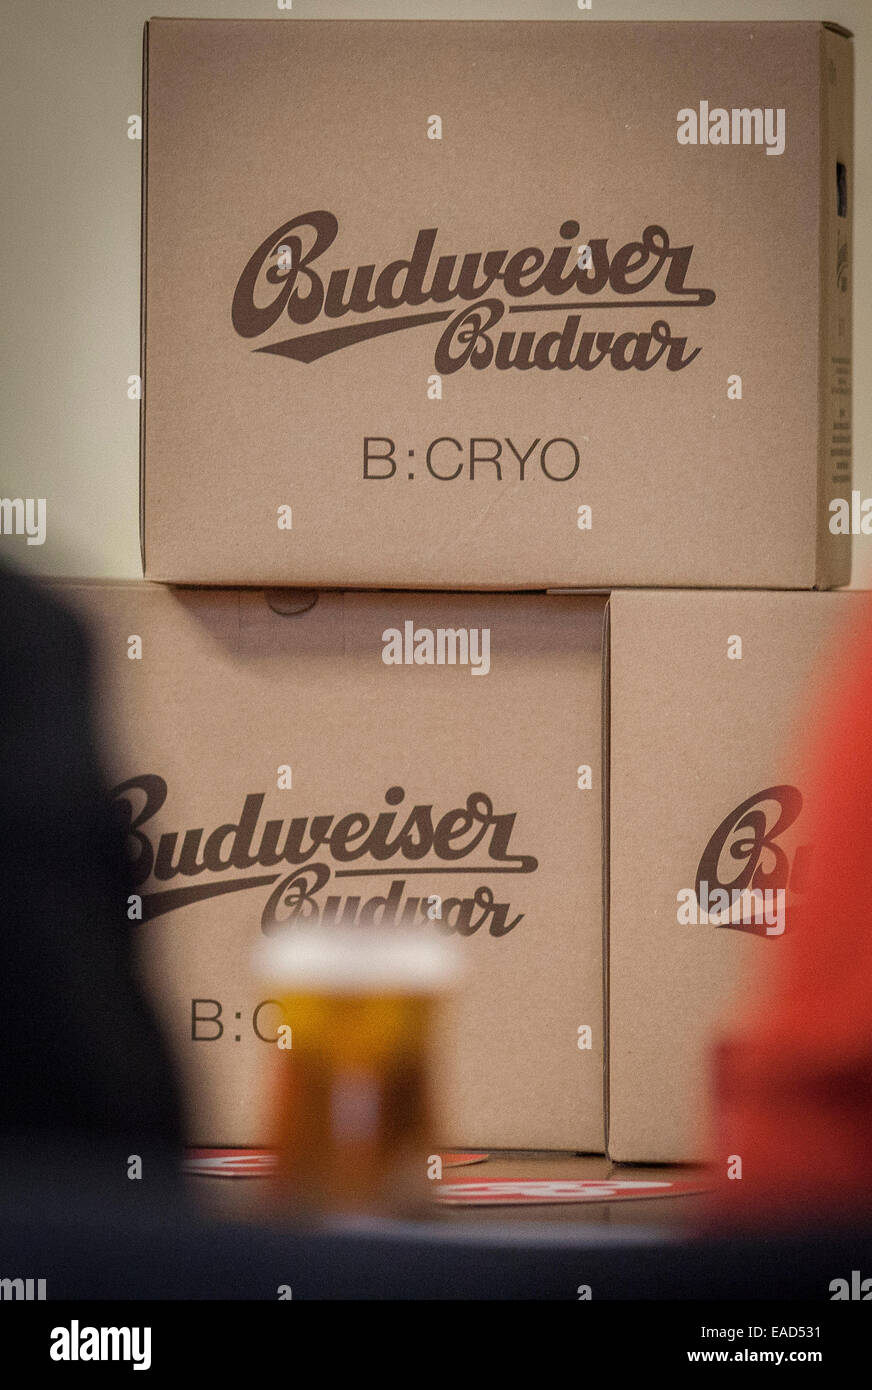 Cryo Beer Stock Photos & Cryo Beer Stock Images - Alamy